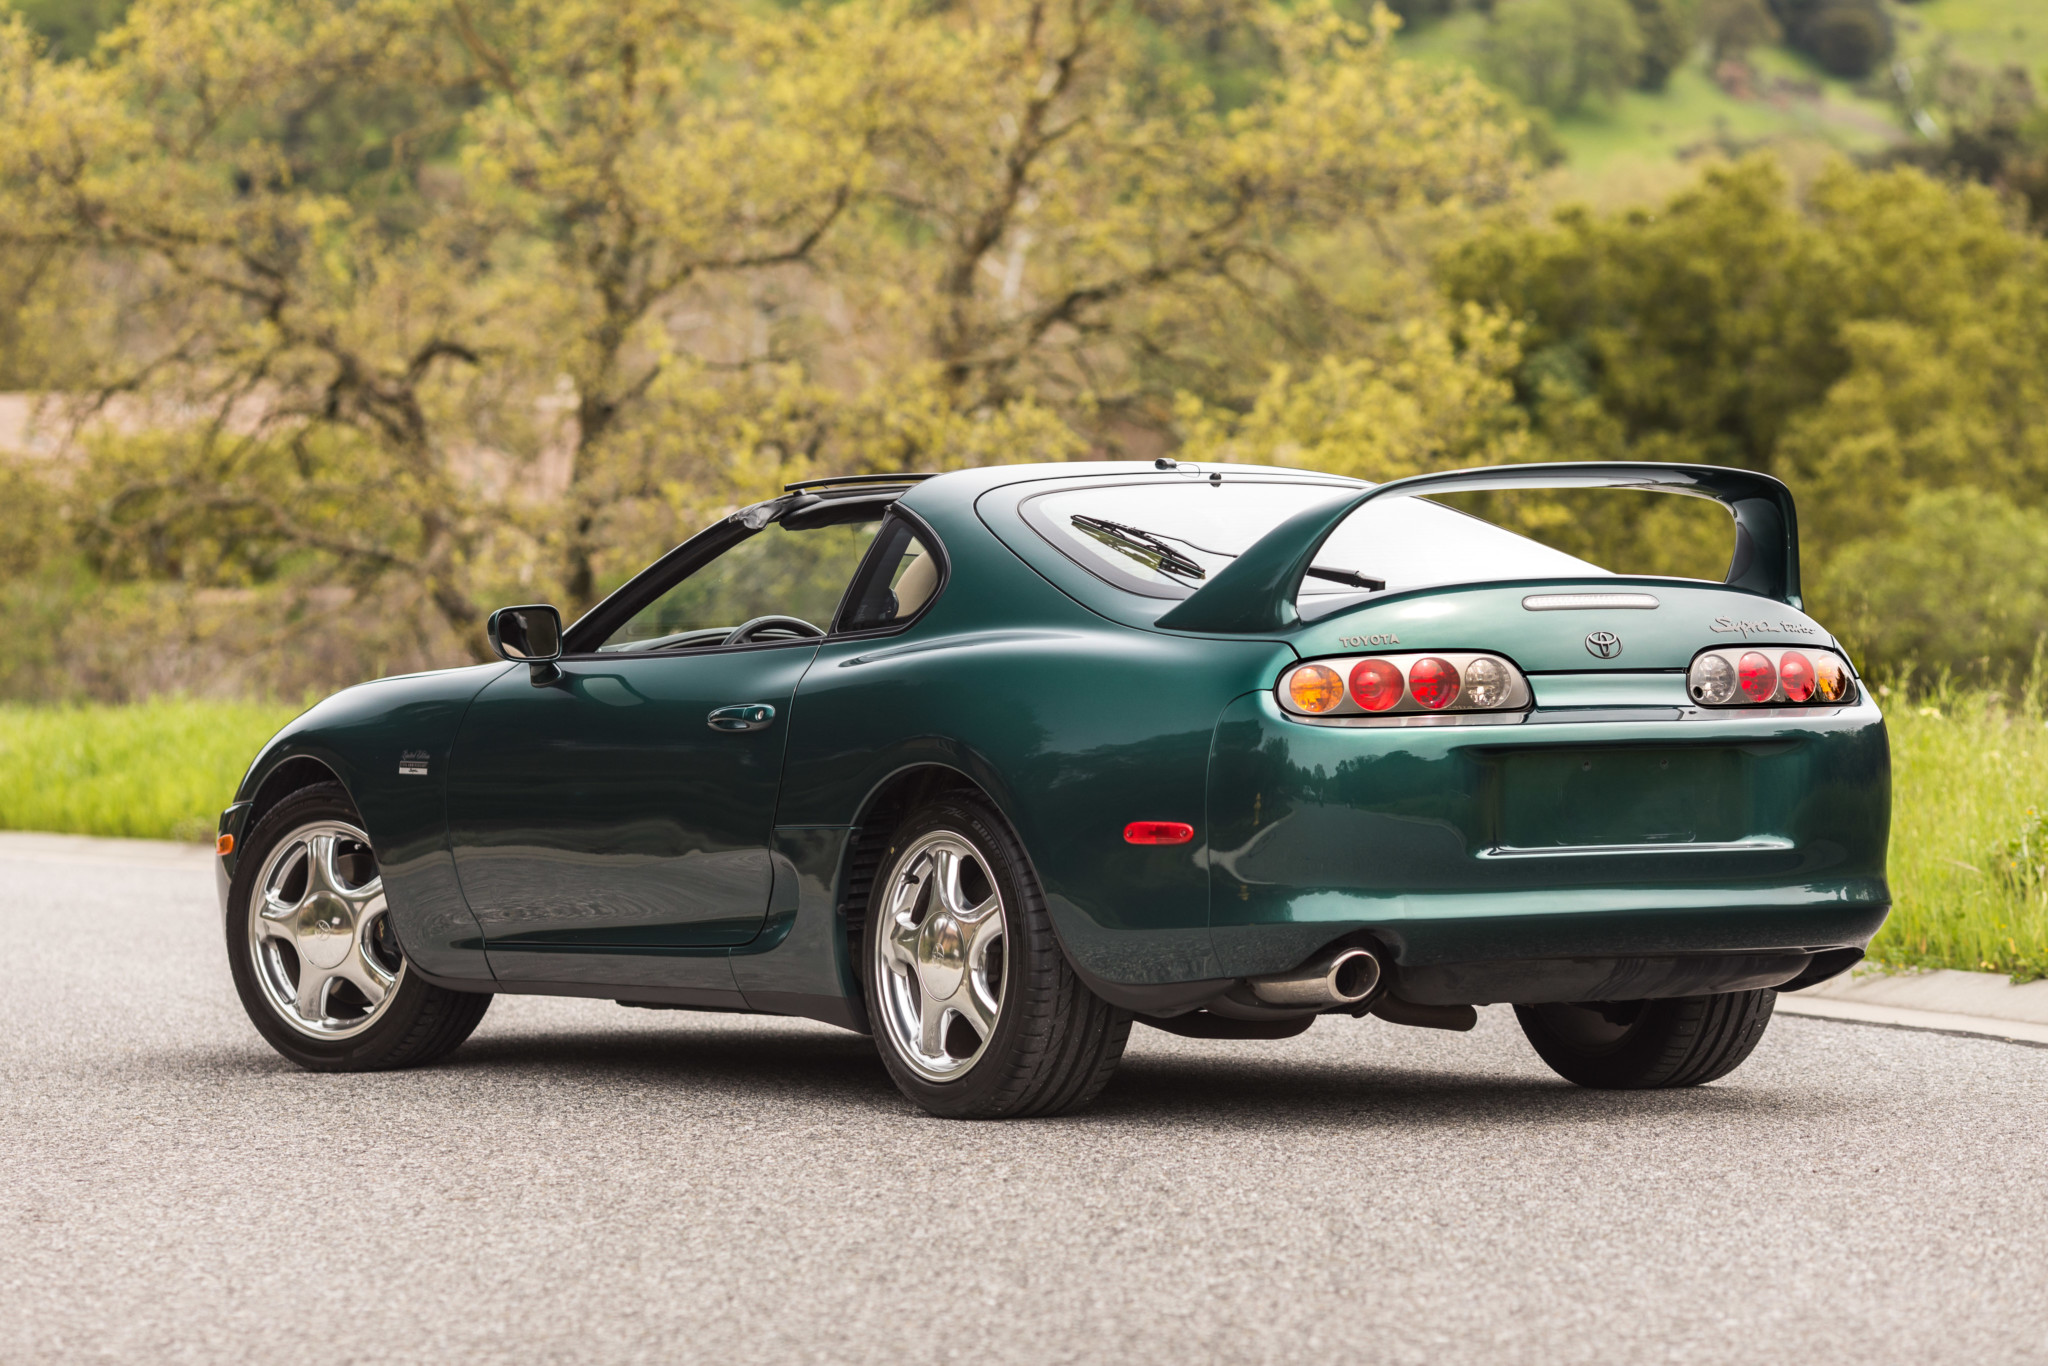 Toyota-Supra-Twin-Turbo-1997-sale-10